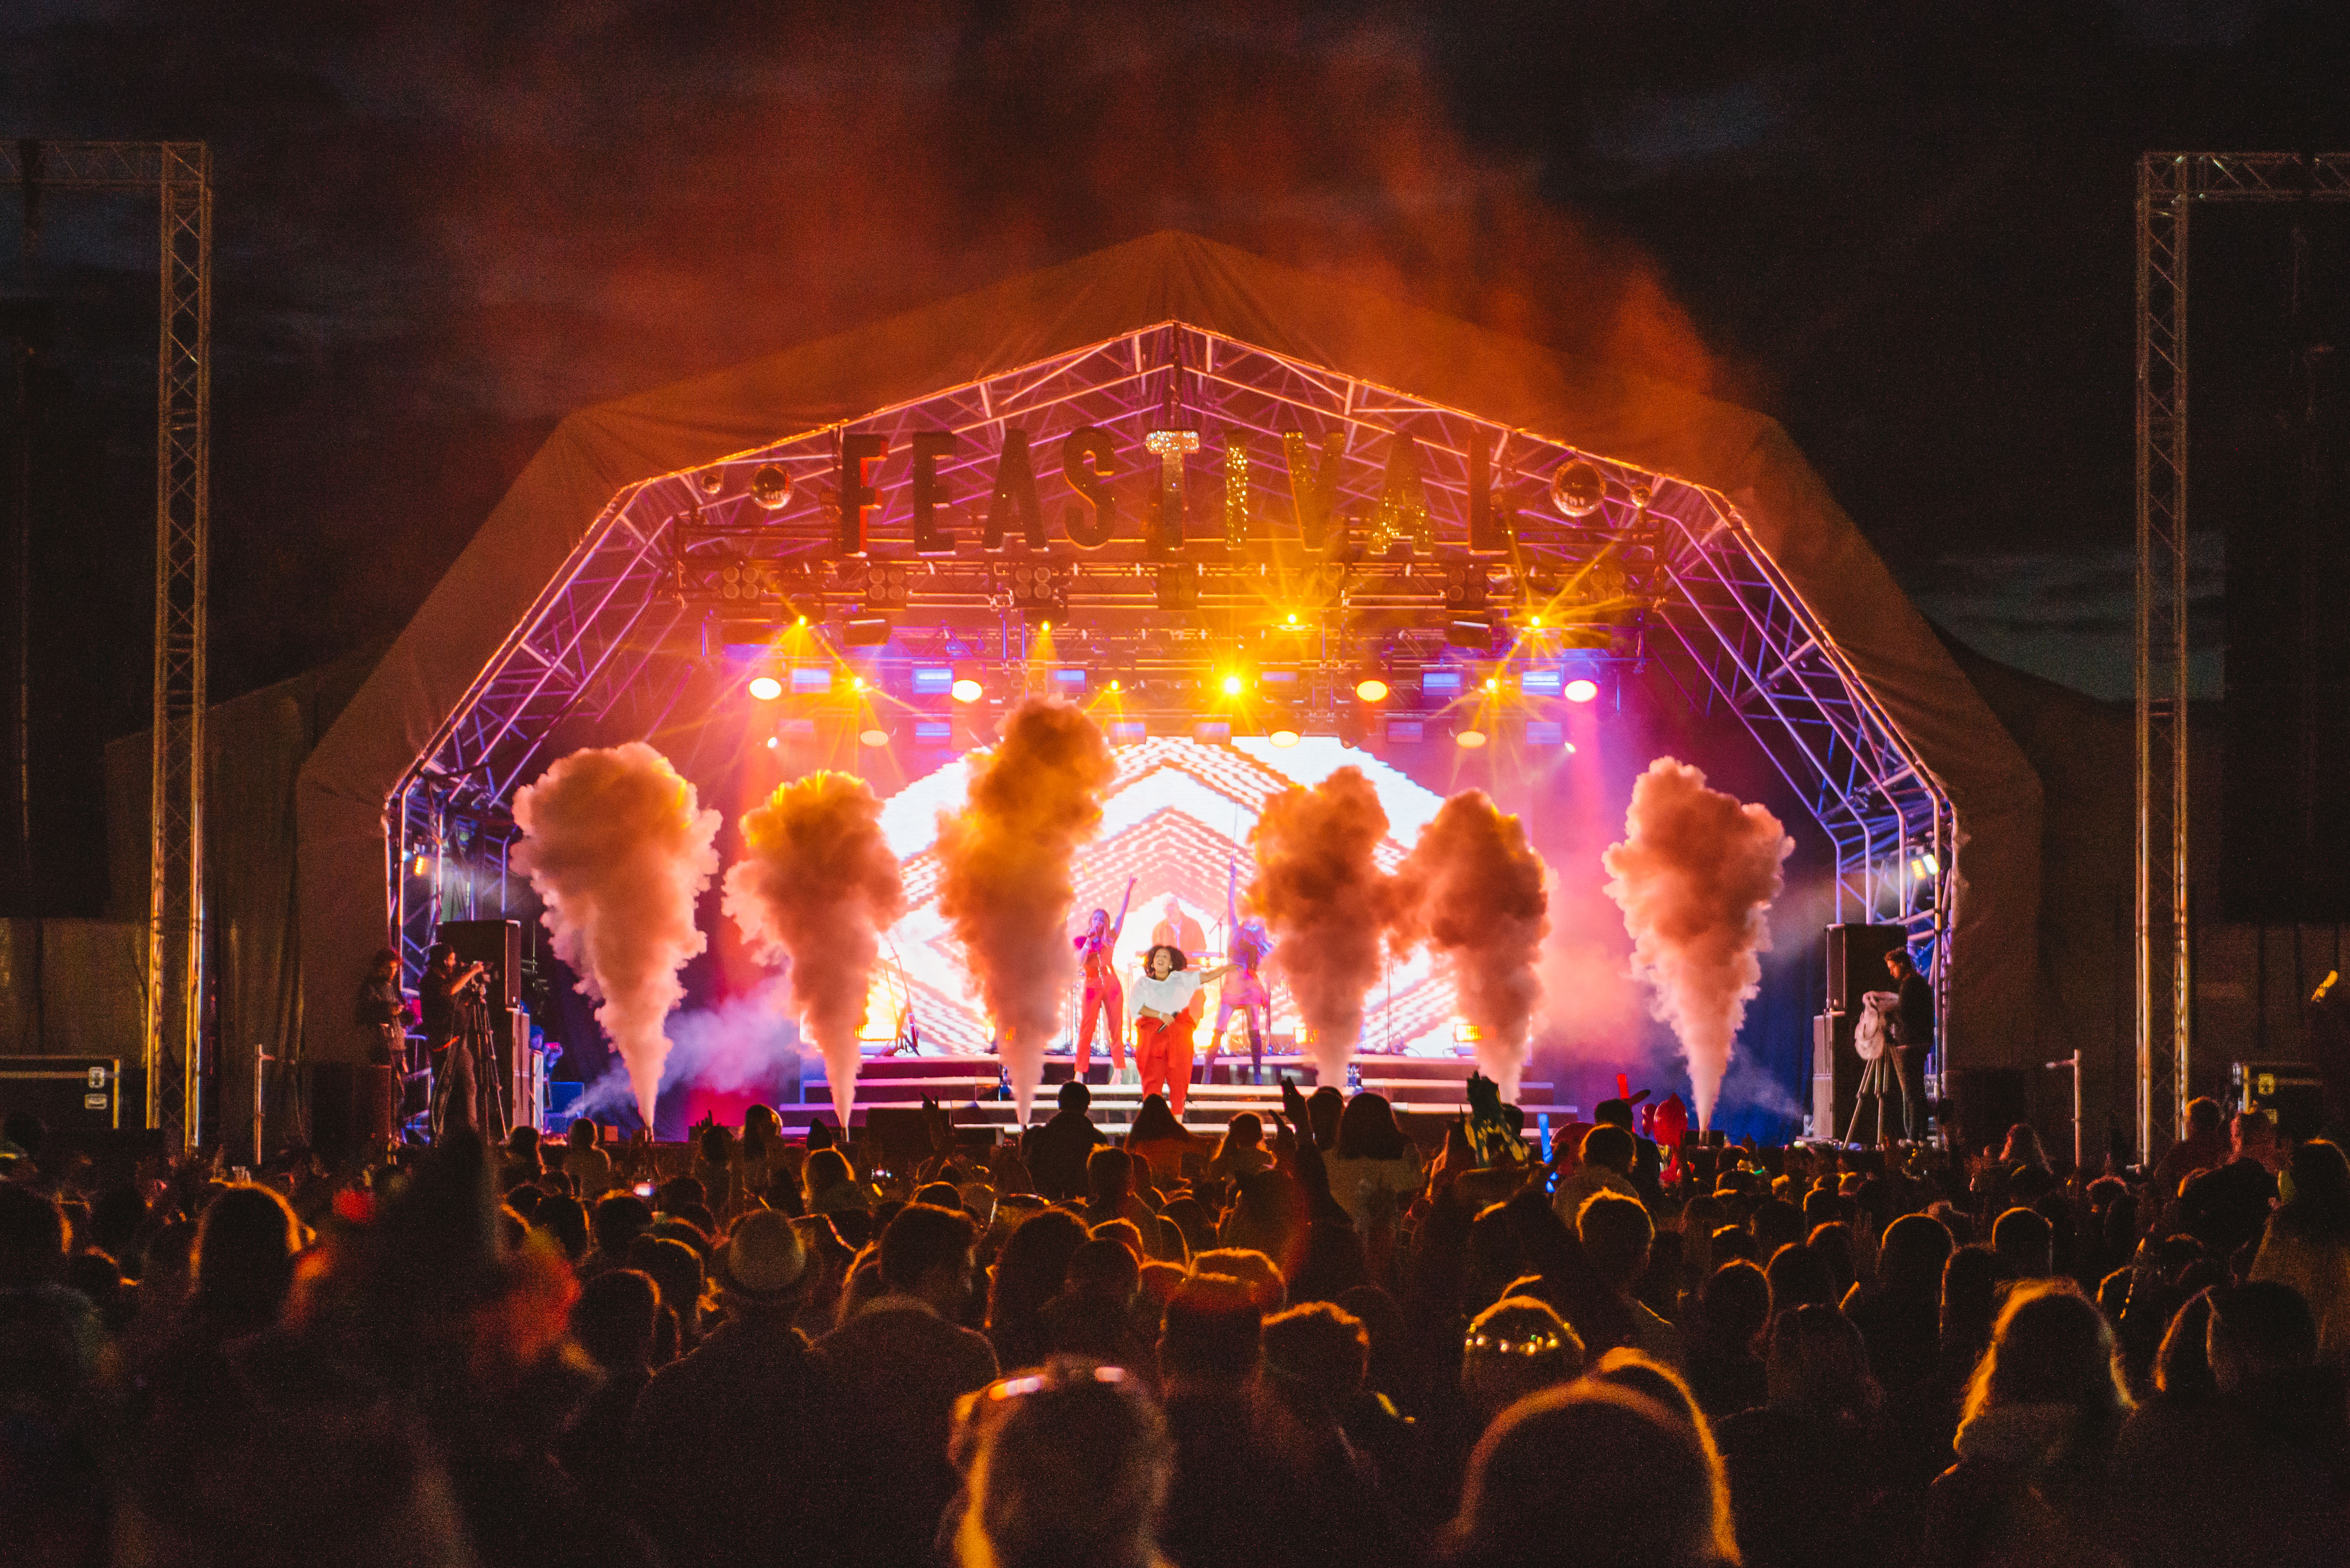 5:10pm: Day tickets to The Big Feastival